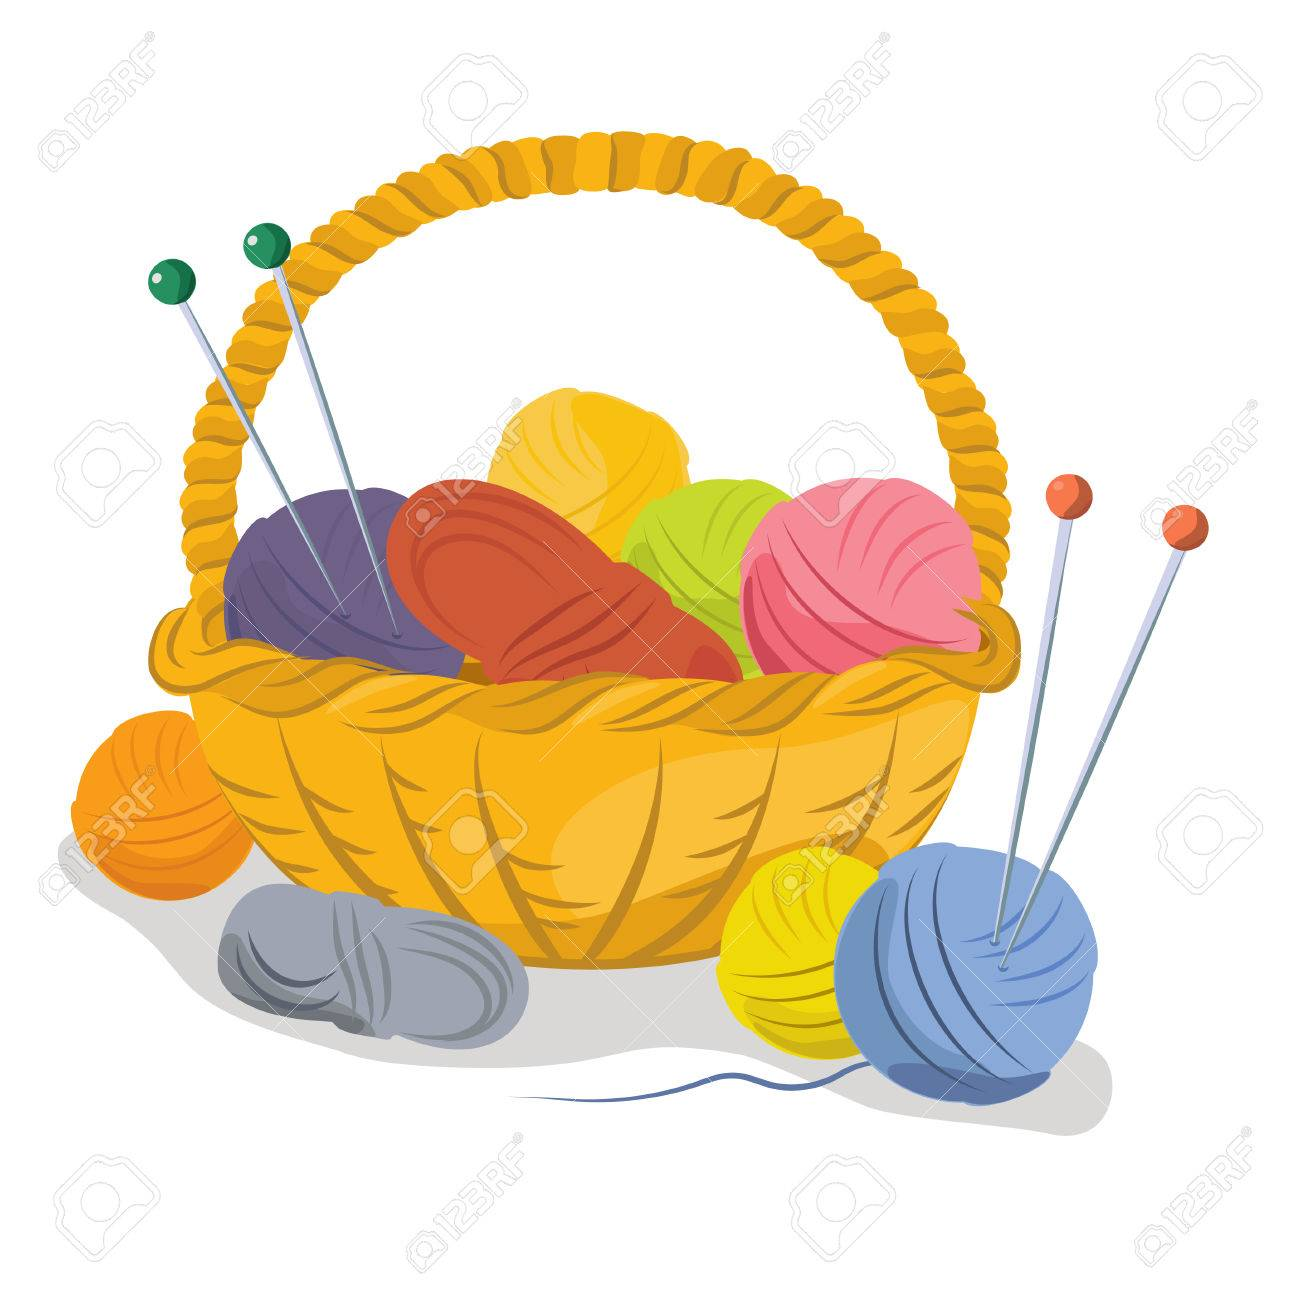 basket with yarn for knitting royalty free cliparts vectors and rh 123rf com knitting clip art pictures knitting clip art black and white